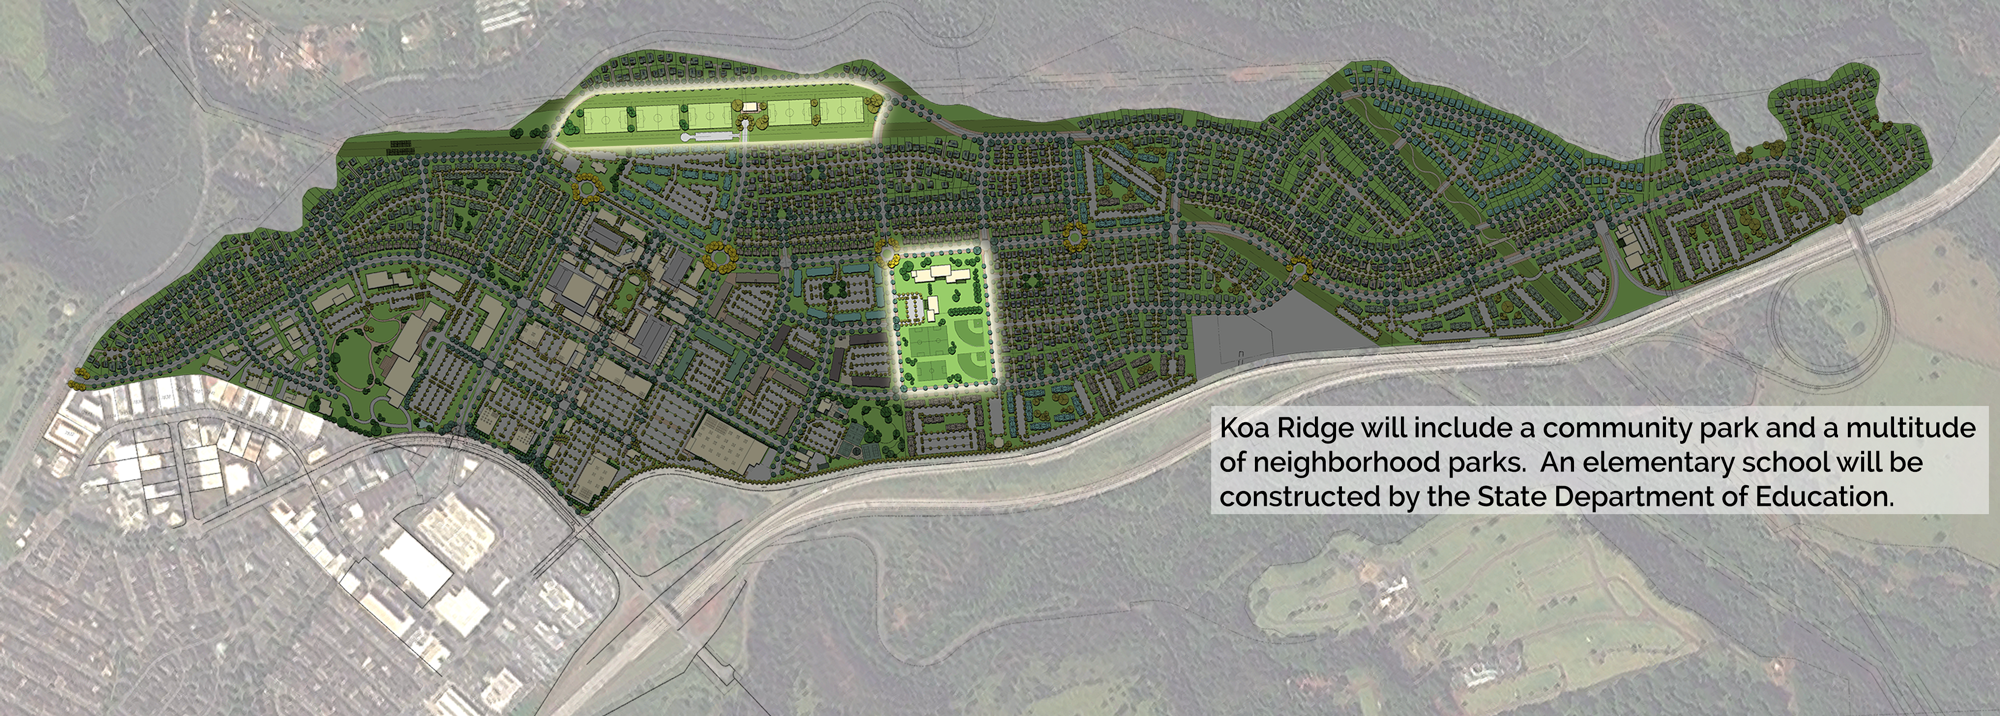 Koa Ridge Master Plan